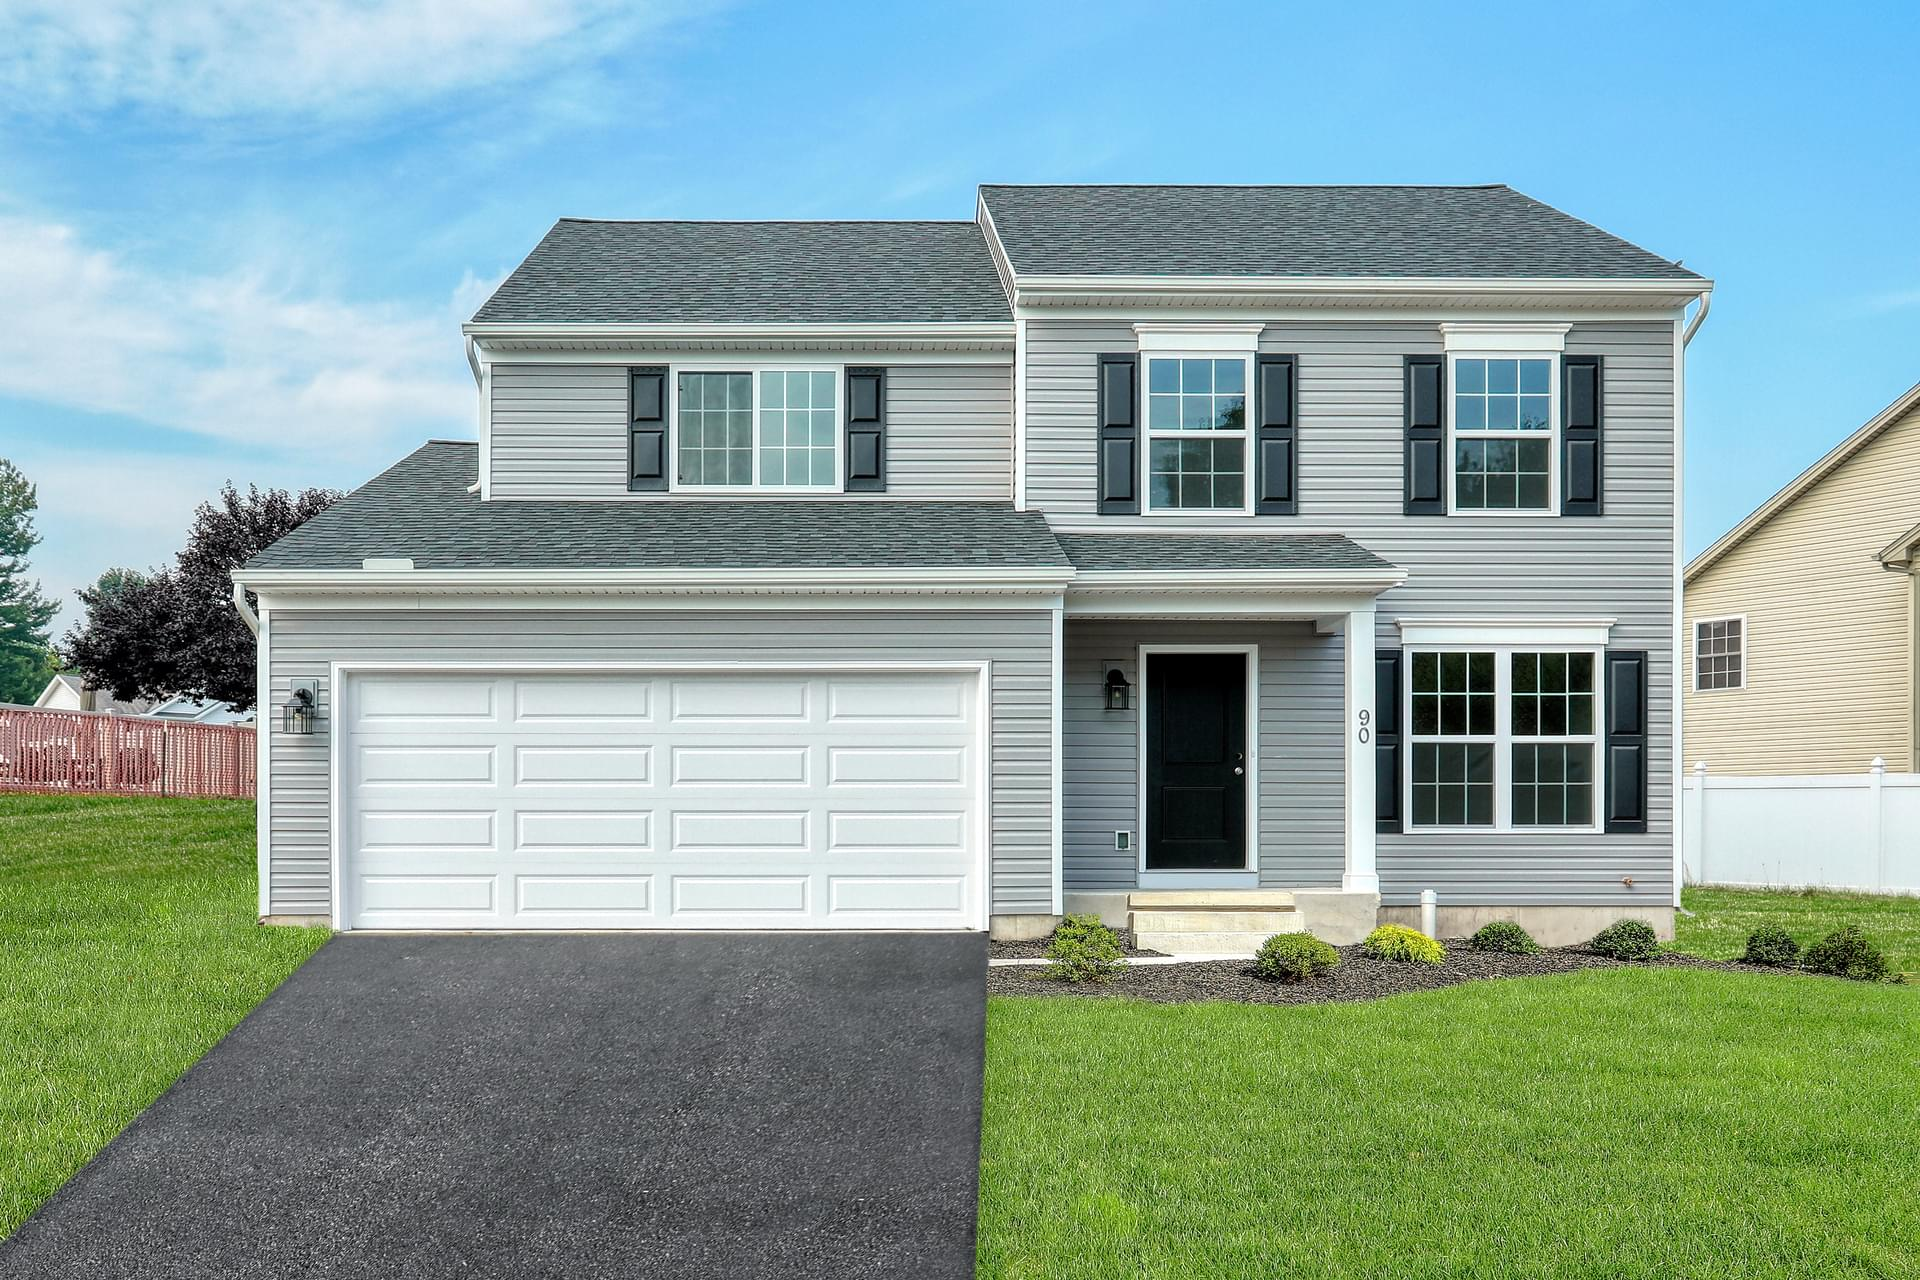 Berks Homes in Lot #49 30 Cambridge Ln., Lewistown, PA 17044 PA